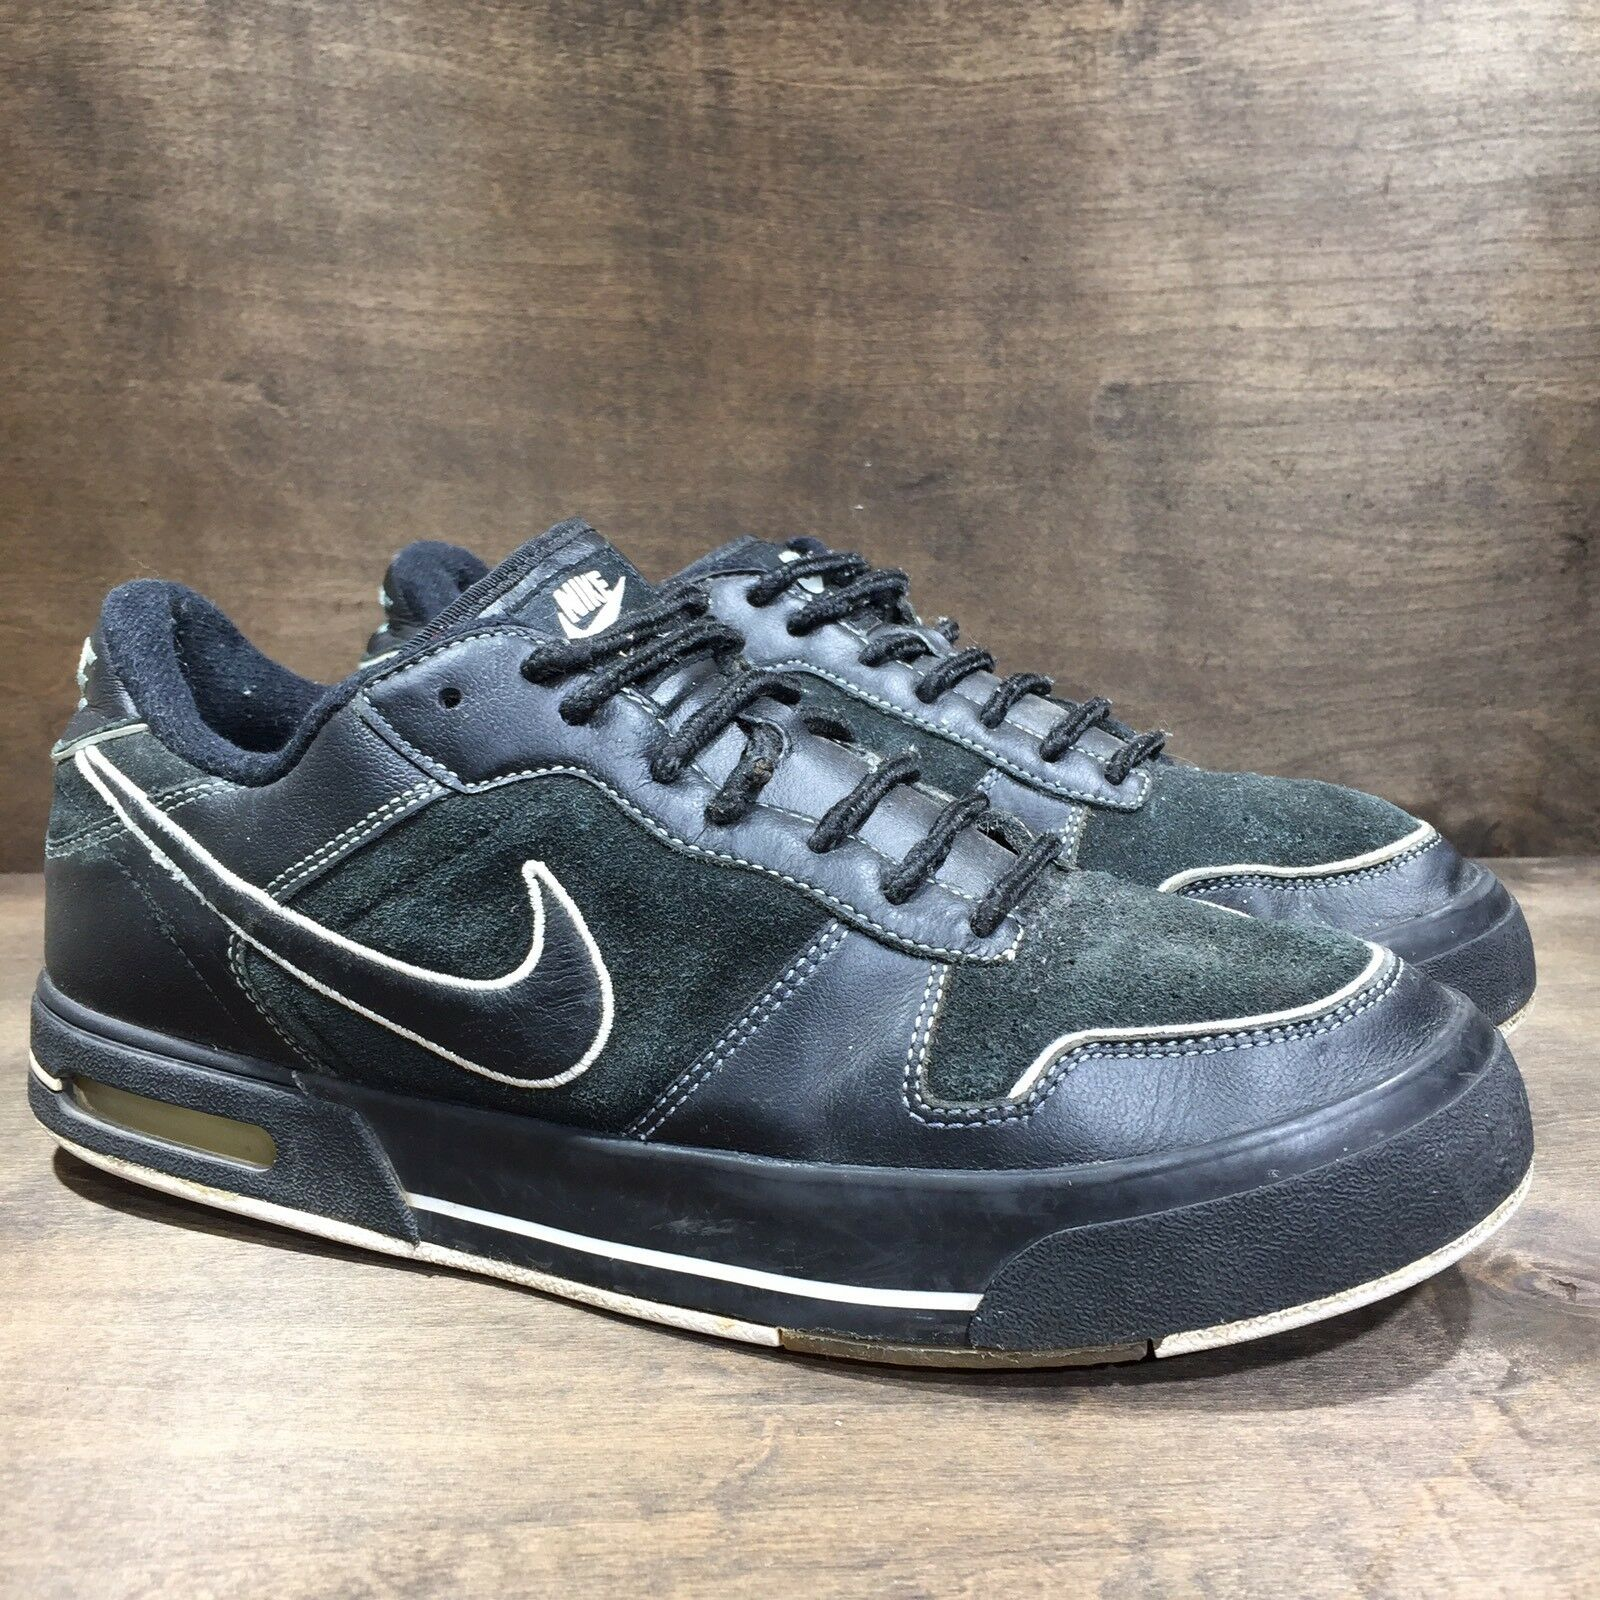 Nike Air Sellwood Shoes Black White  Men's Comfortable Cheap and beautiful fashion